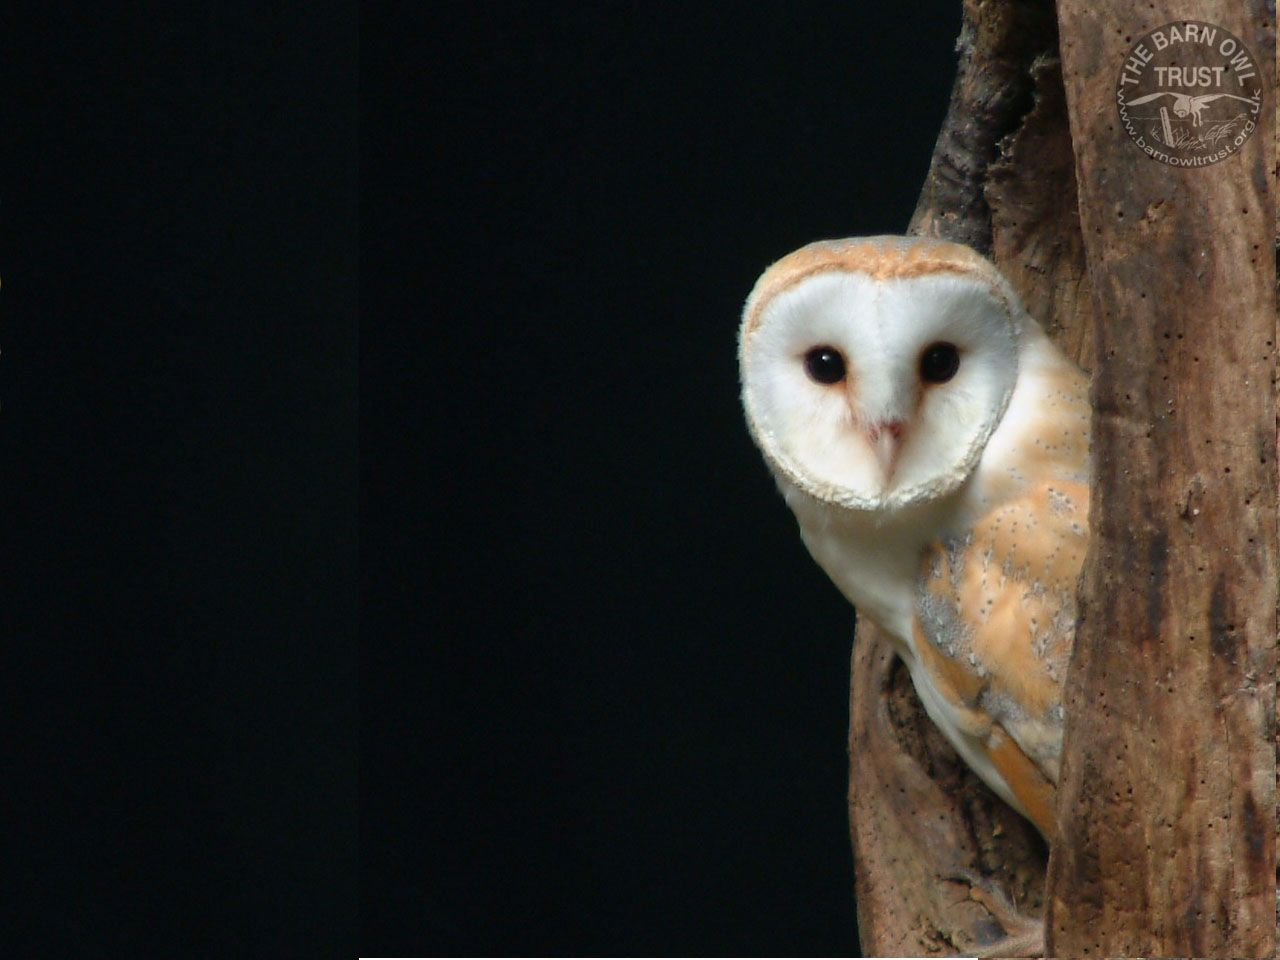 Barn Owl Barn Owls Most Commonly Hunt Small Mammals Such As Mice Voles And Rats But Barn Owls Also Hunt Fish Close To The Surface Of The Water And Smaller Birds In Dangerous Of Wild Animals Bloggercom Dangerous Of Wild Animals Barn Owl